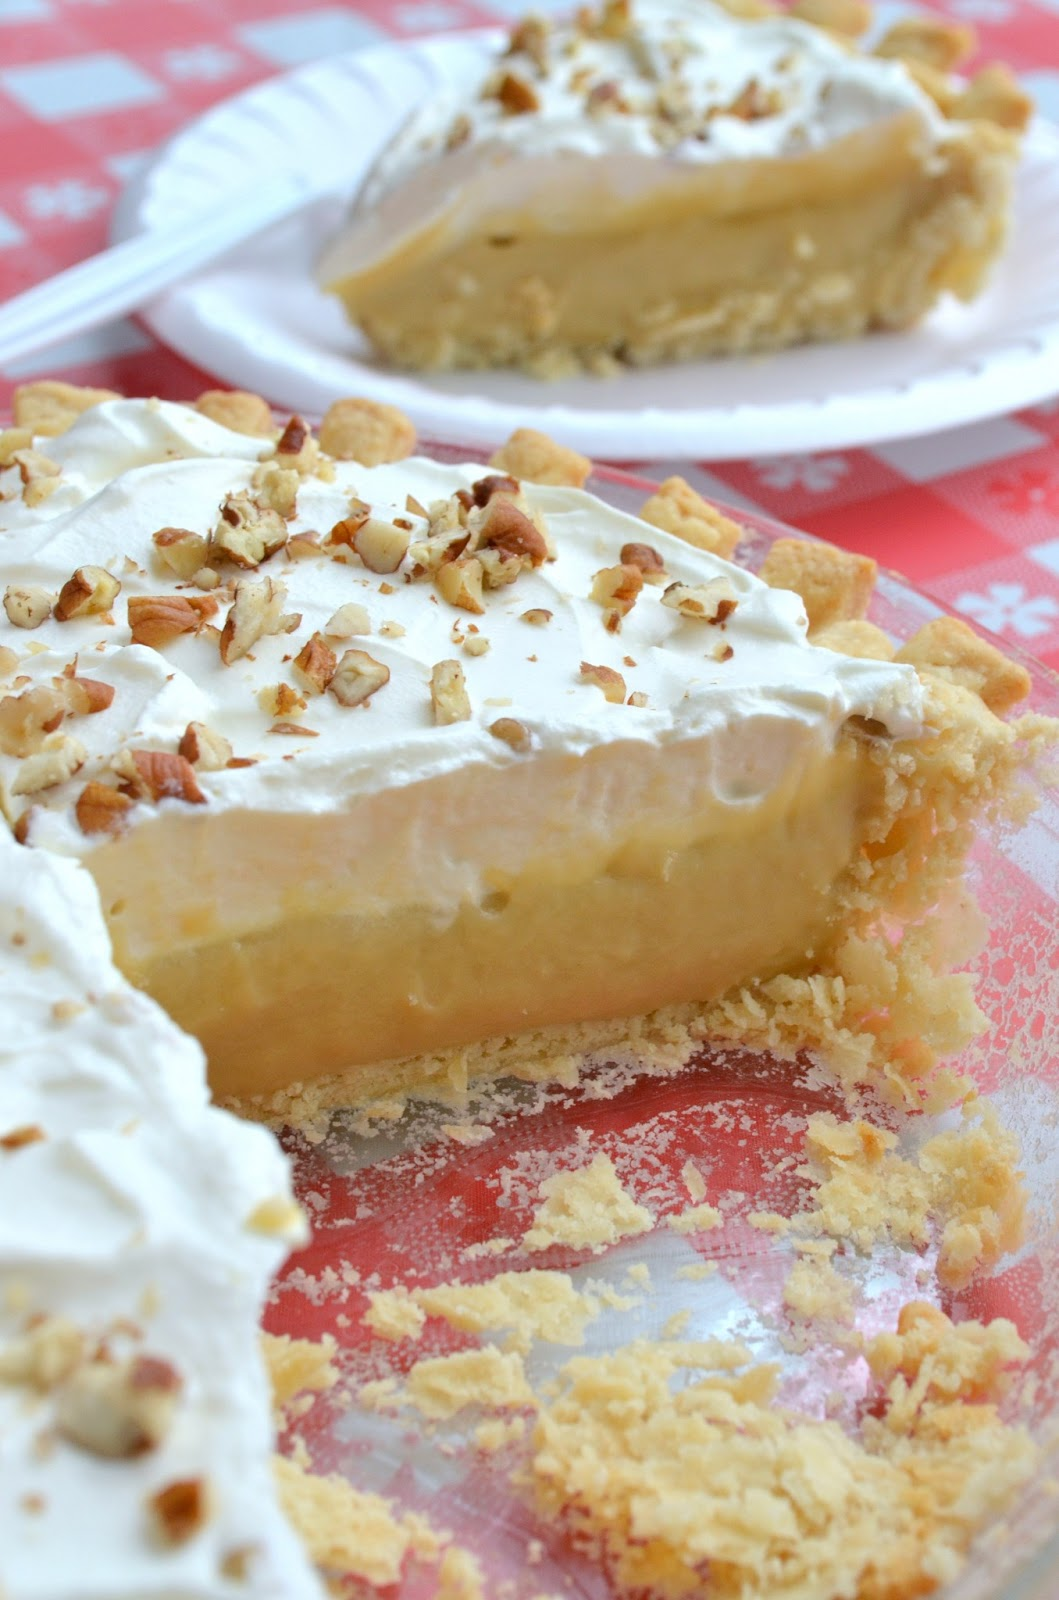 Pie on Sunday: Butterscotch at the Potluck